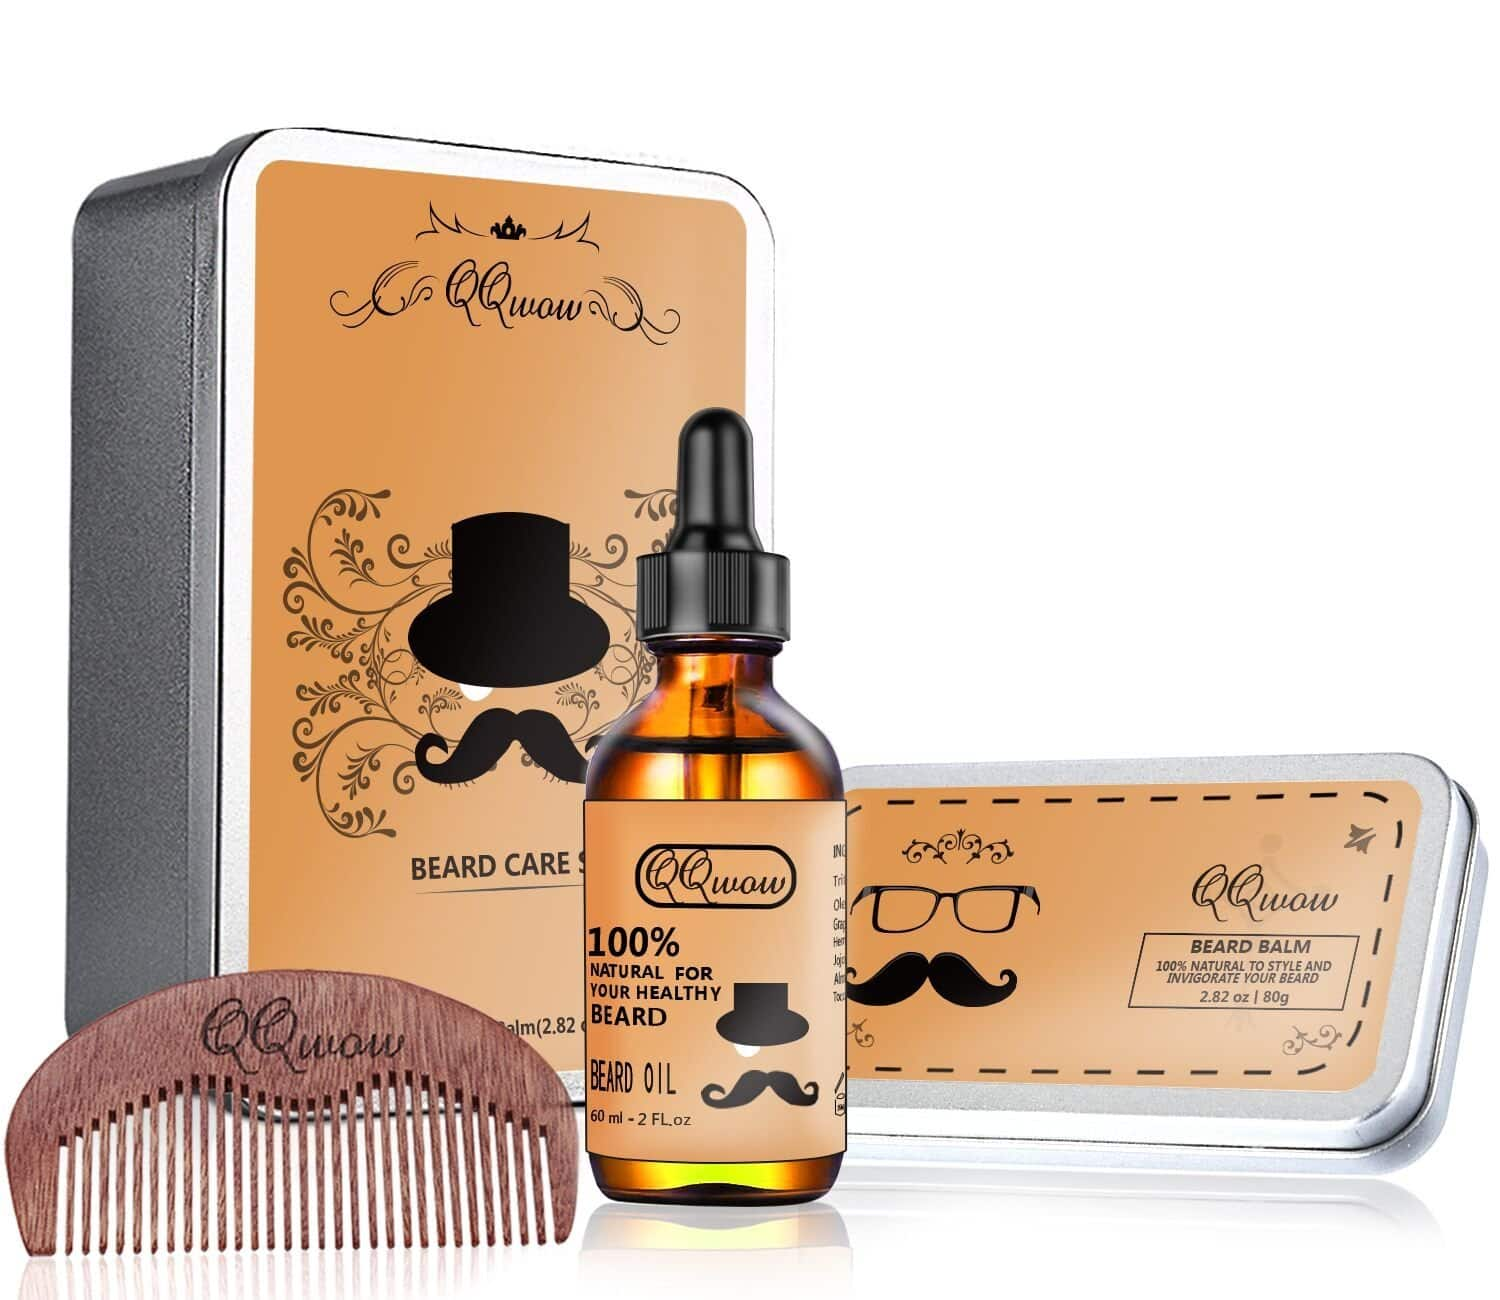 Beard Kit for Mens Grooming and Beard Care Includes: Oil, Balm, Comb, Conditioner & Softener for $11.89